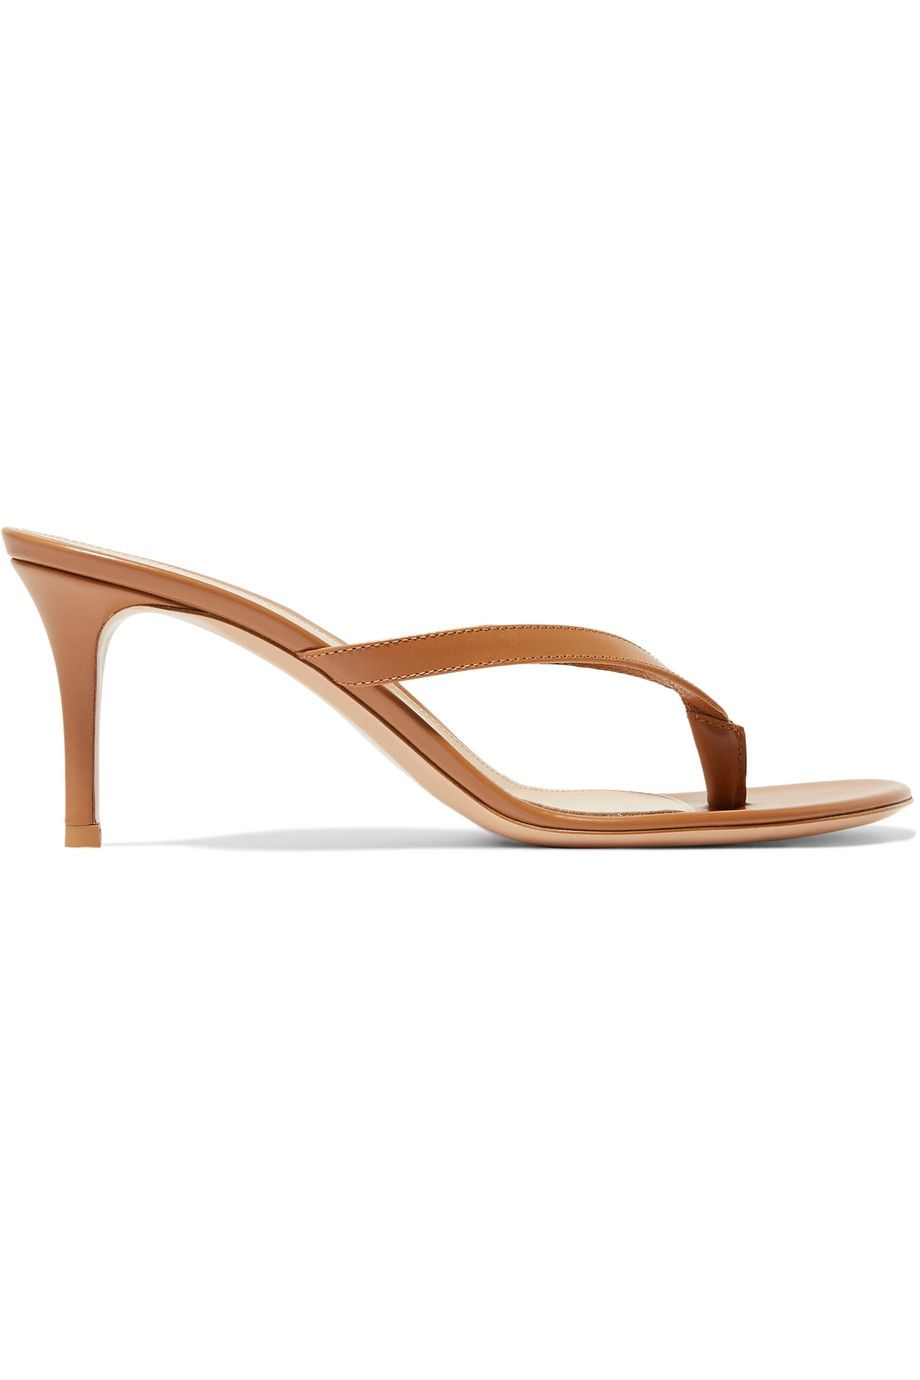 0bd1dd0e13f3 Cute Summer Sandals 2019 - 24 Trendy Pairs of Sandals and and Heels for  Summer